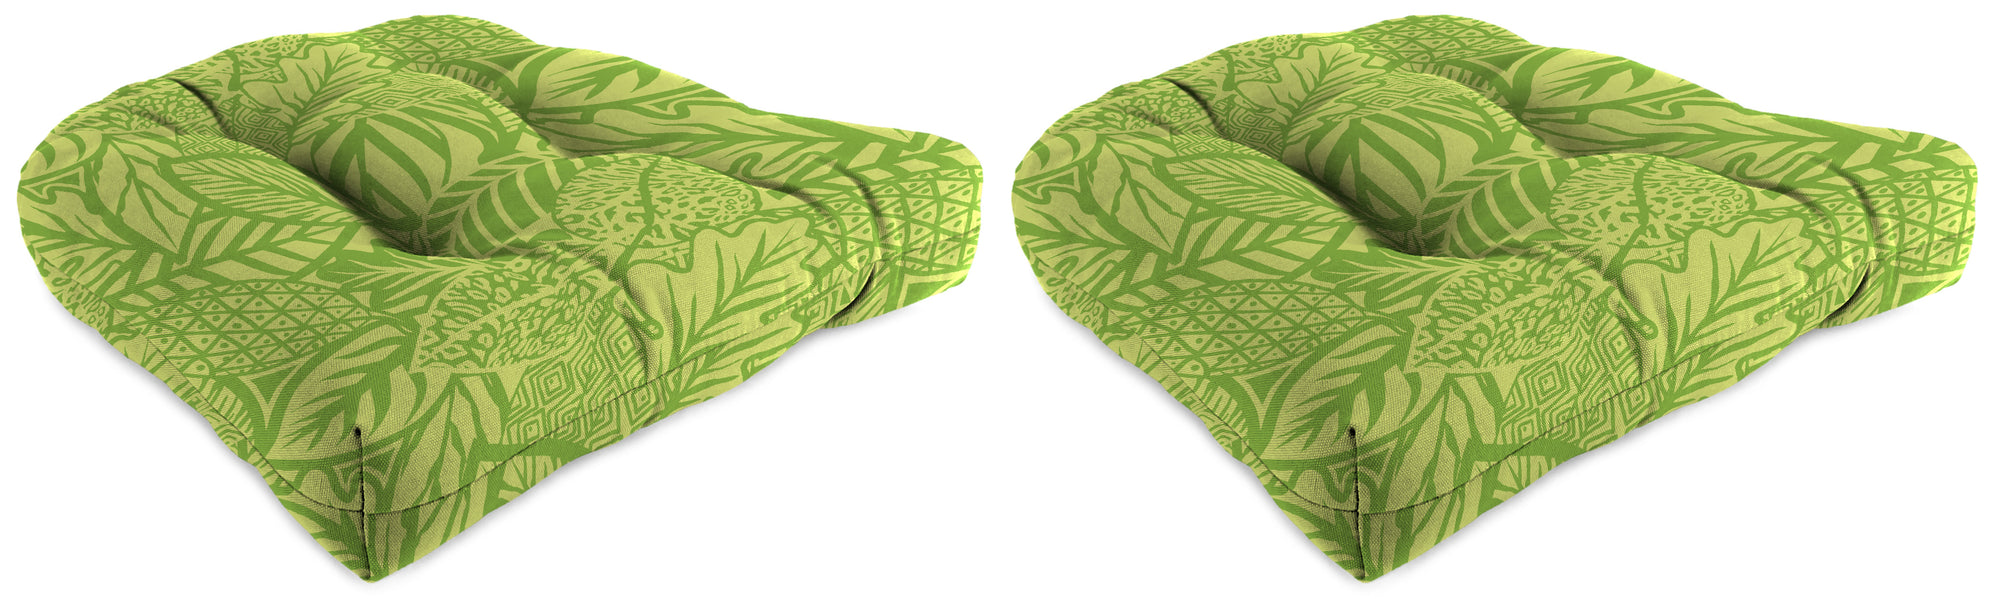 "Set of 2 Outdoor 18"" Wicker Chair Cushions-MAVEN LEAF RICHLOOM"